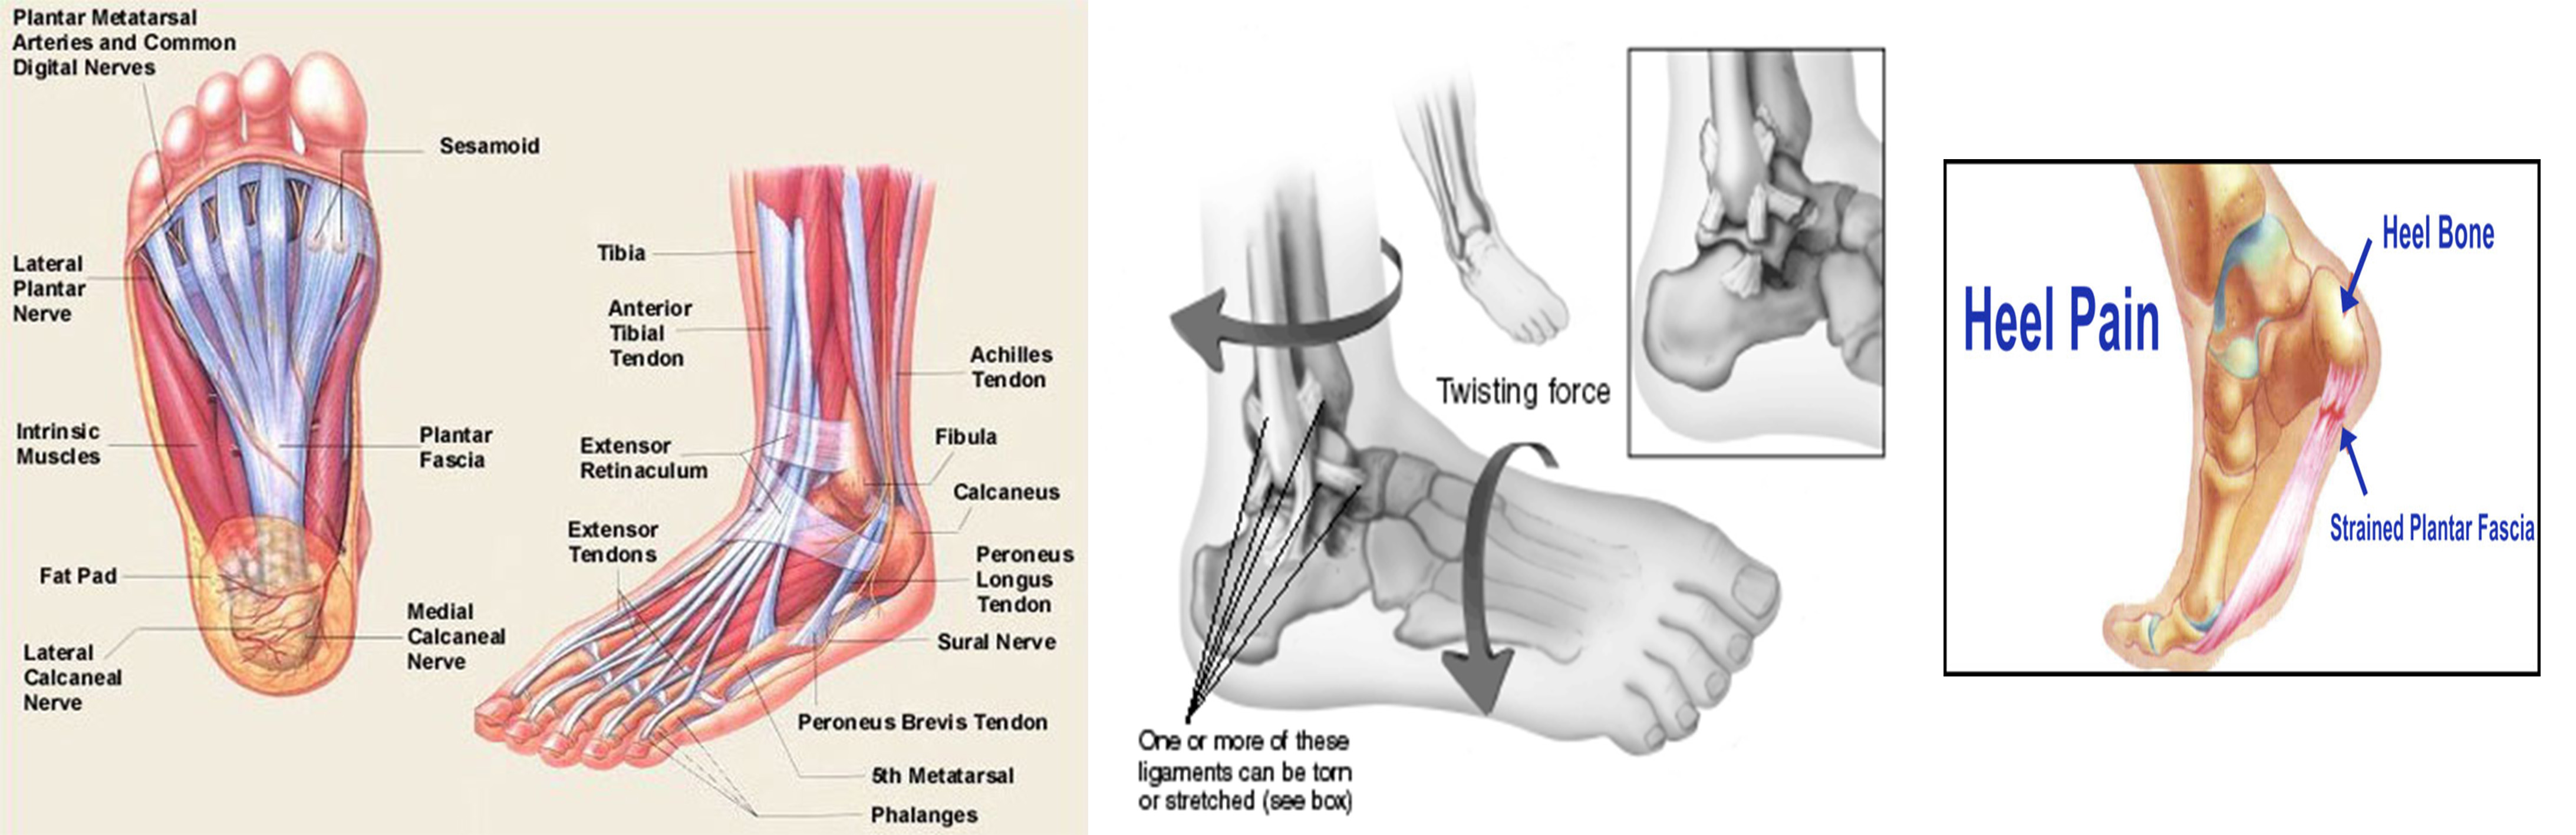 Foot and Ankle Pain - Singapore Orthopaedic Centre